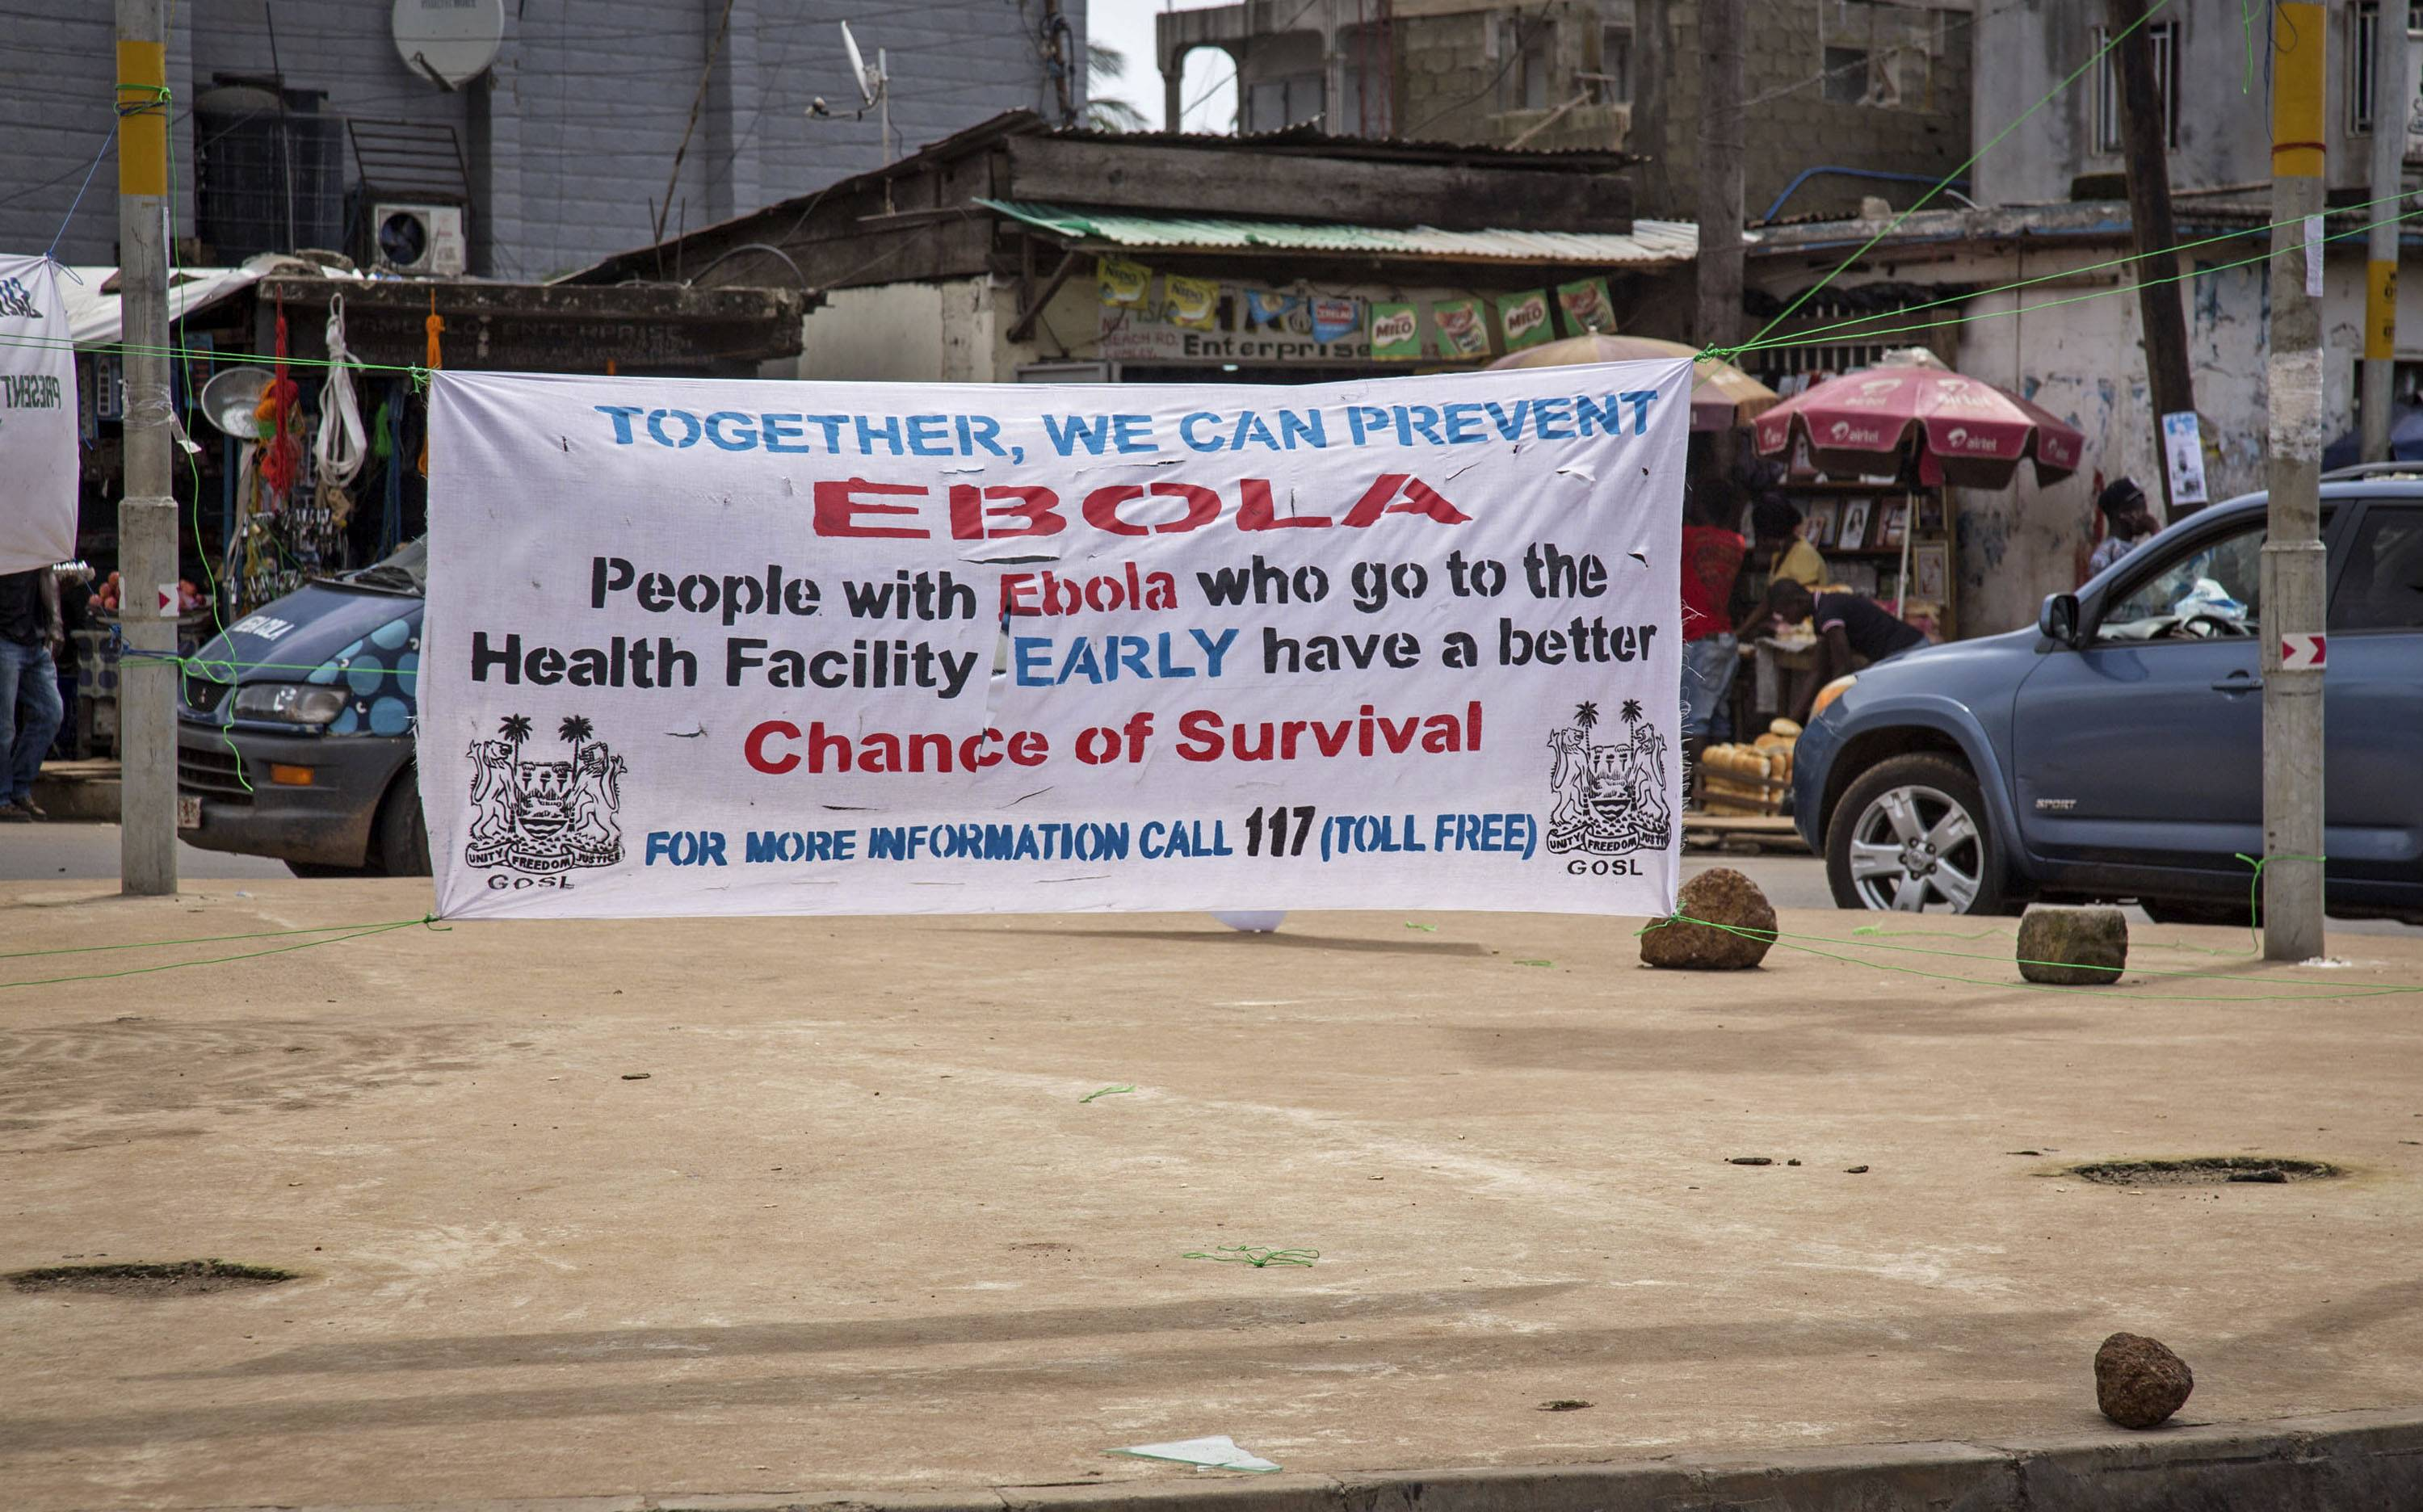 A banner encouraging people suffering from Ebola to go immediately to a health center for treatment on a sidewalk in the city of  Freetown, Sierra Leone.